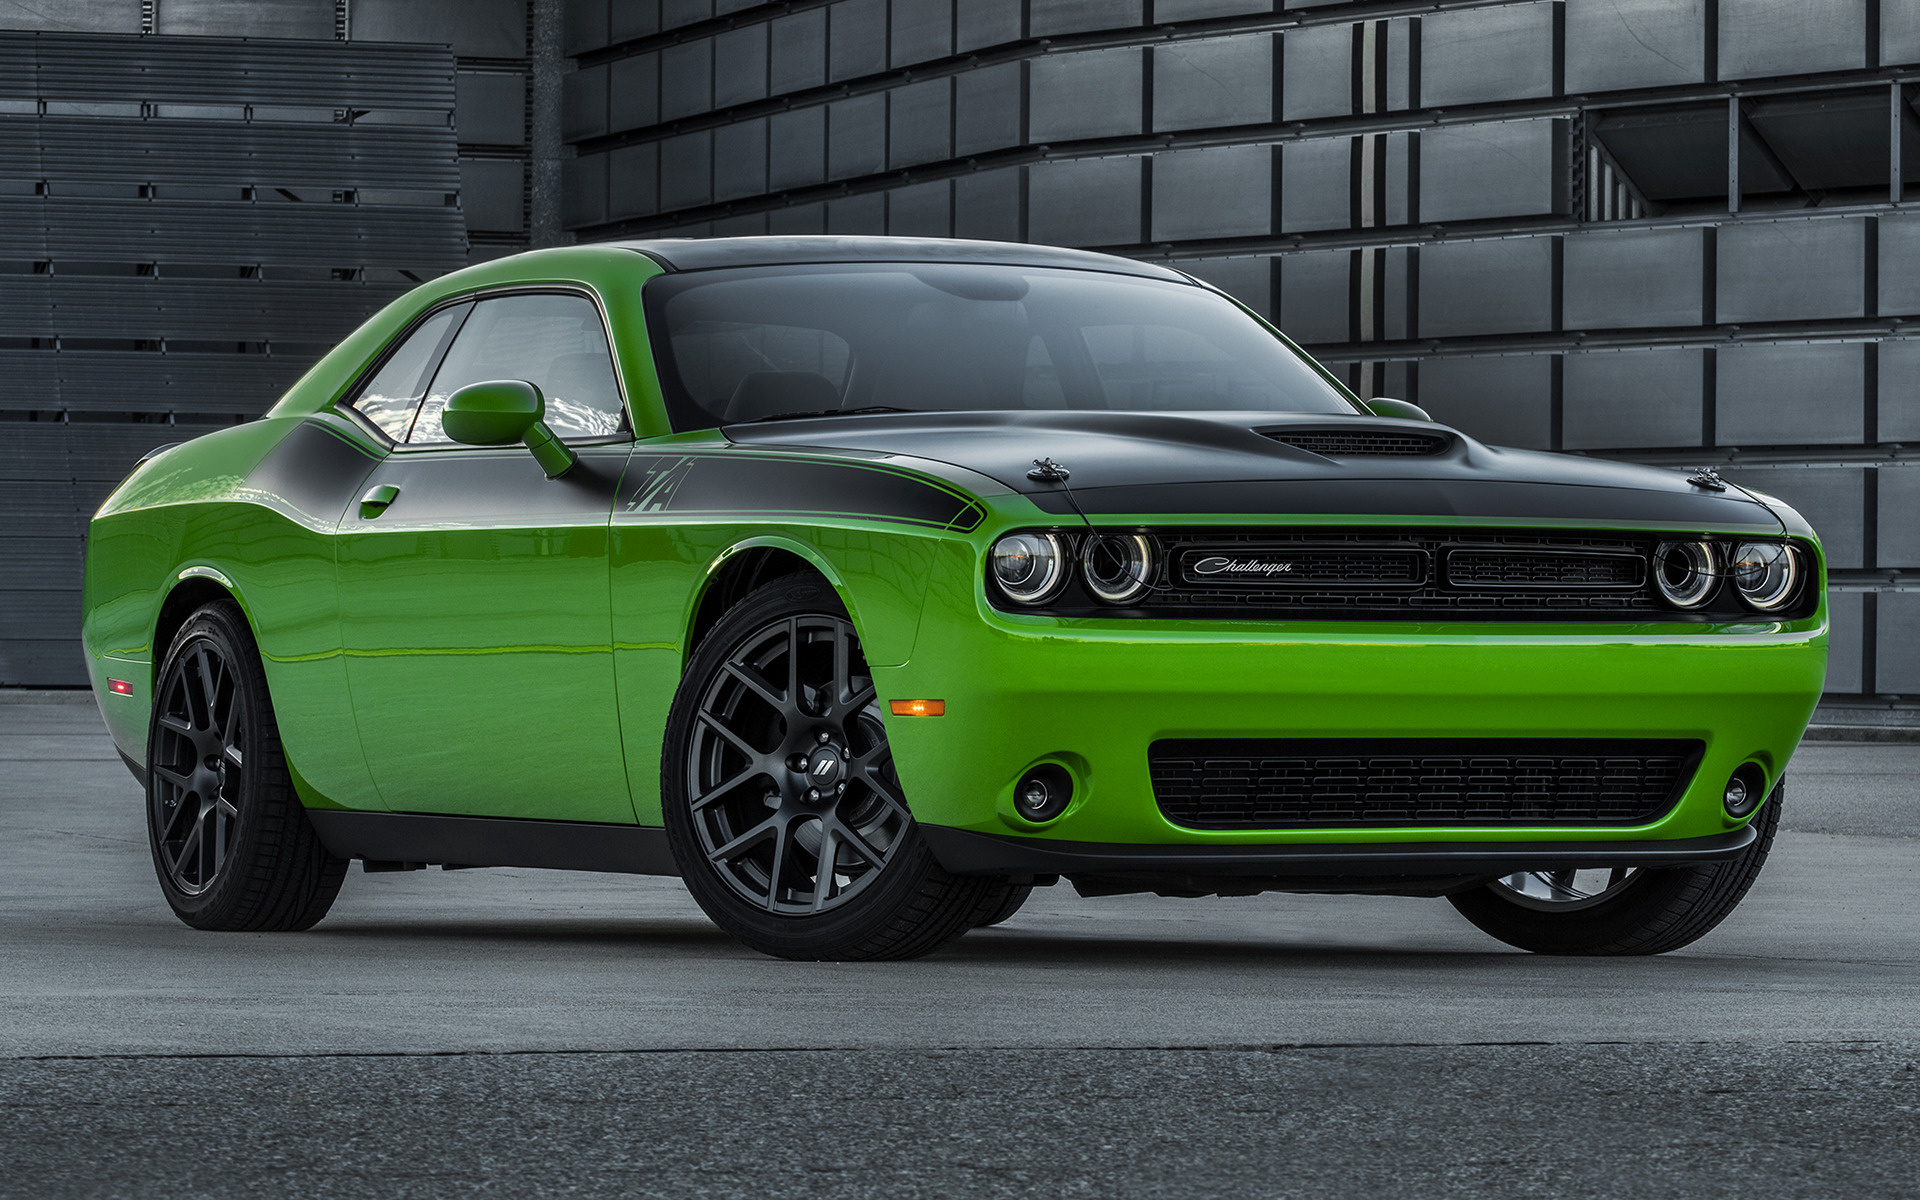 Genesis Car Wallpaper Dodge Challenger T A 2017 Wallpapers And Hd Images Car